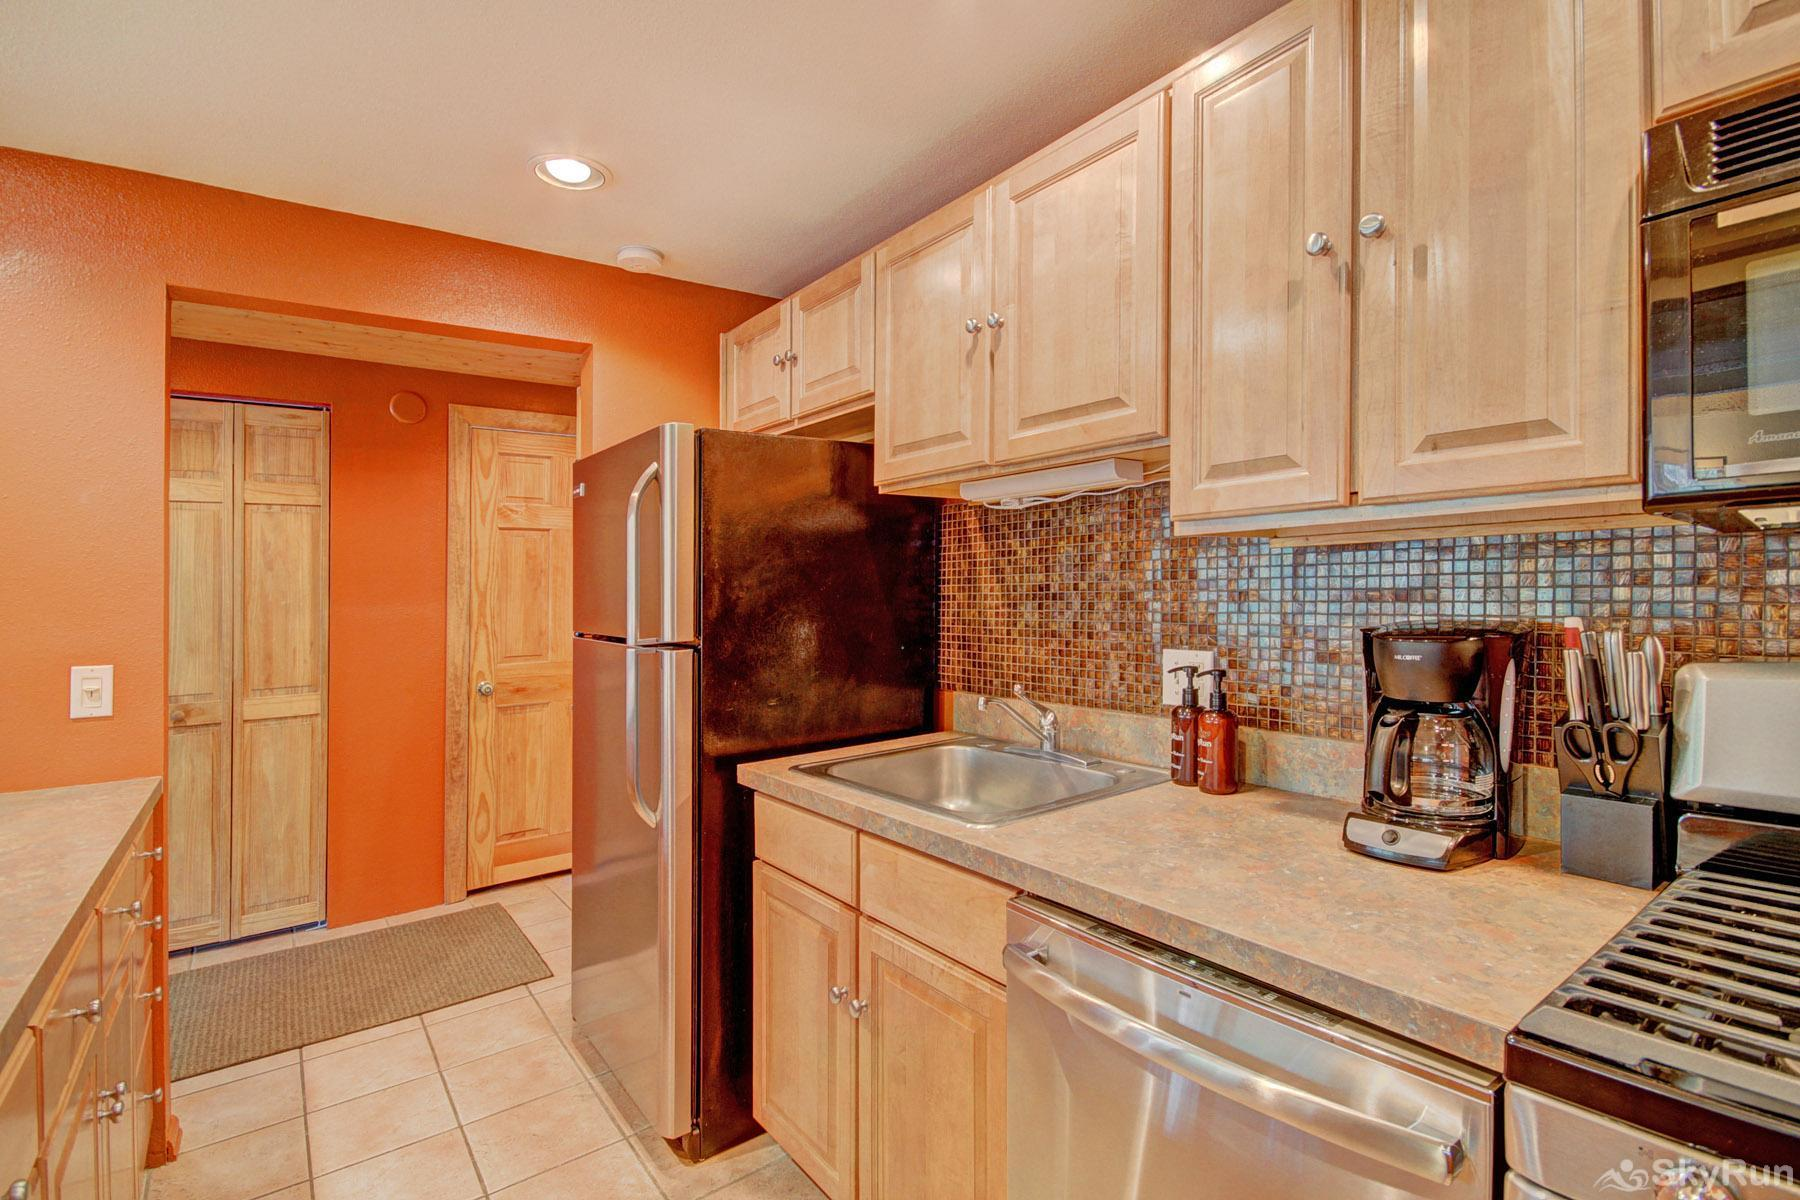 The Lift C212 Fully equipped kitchen updated with modern appliances